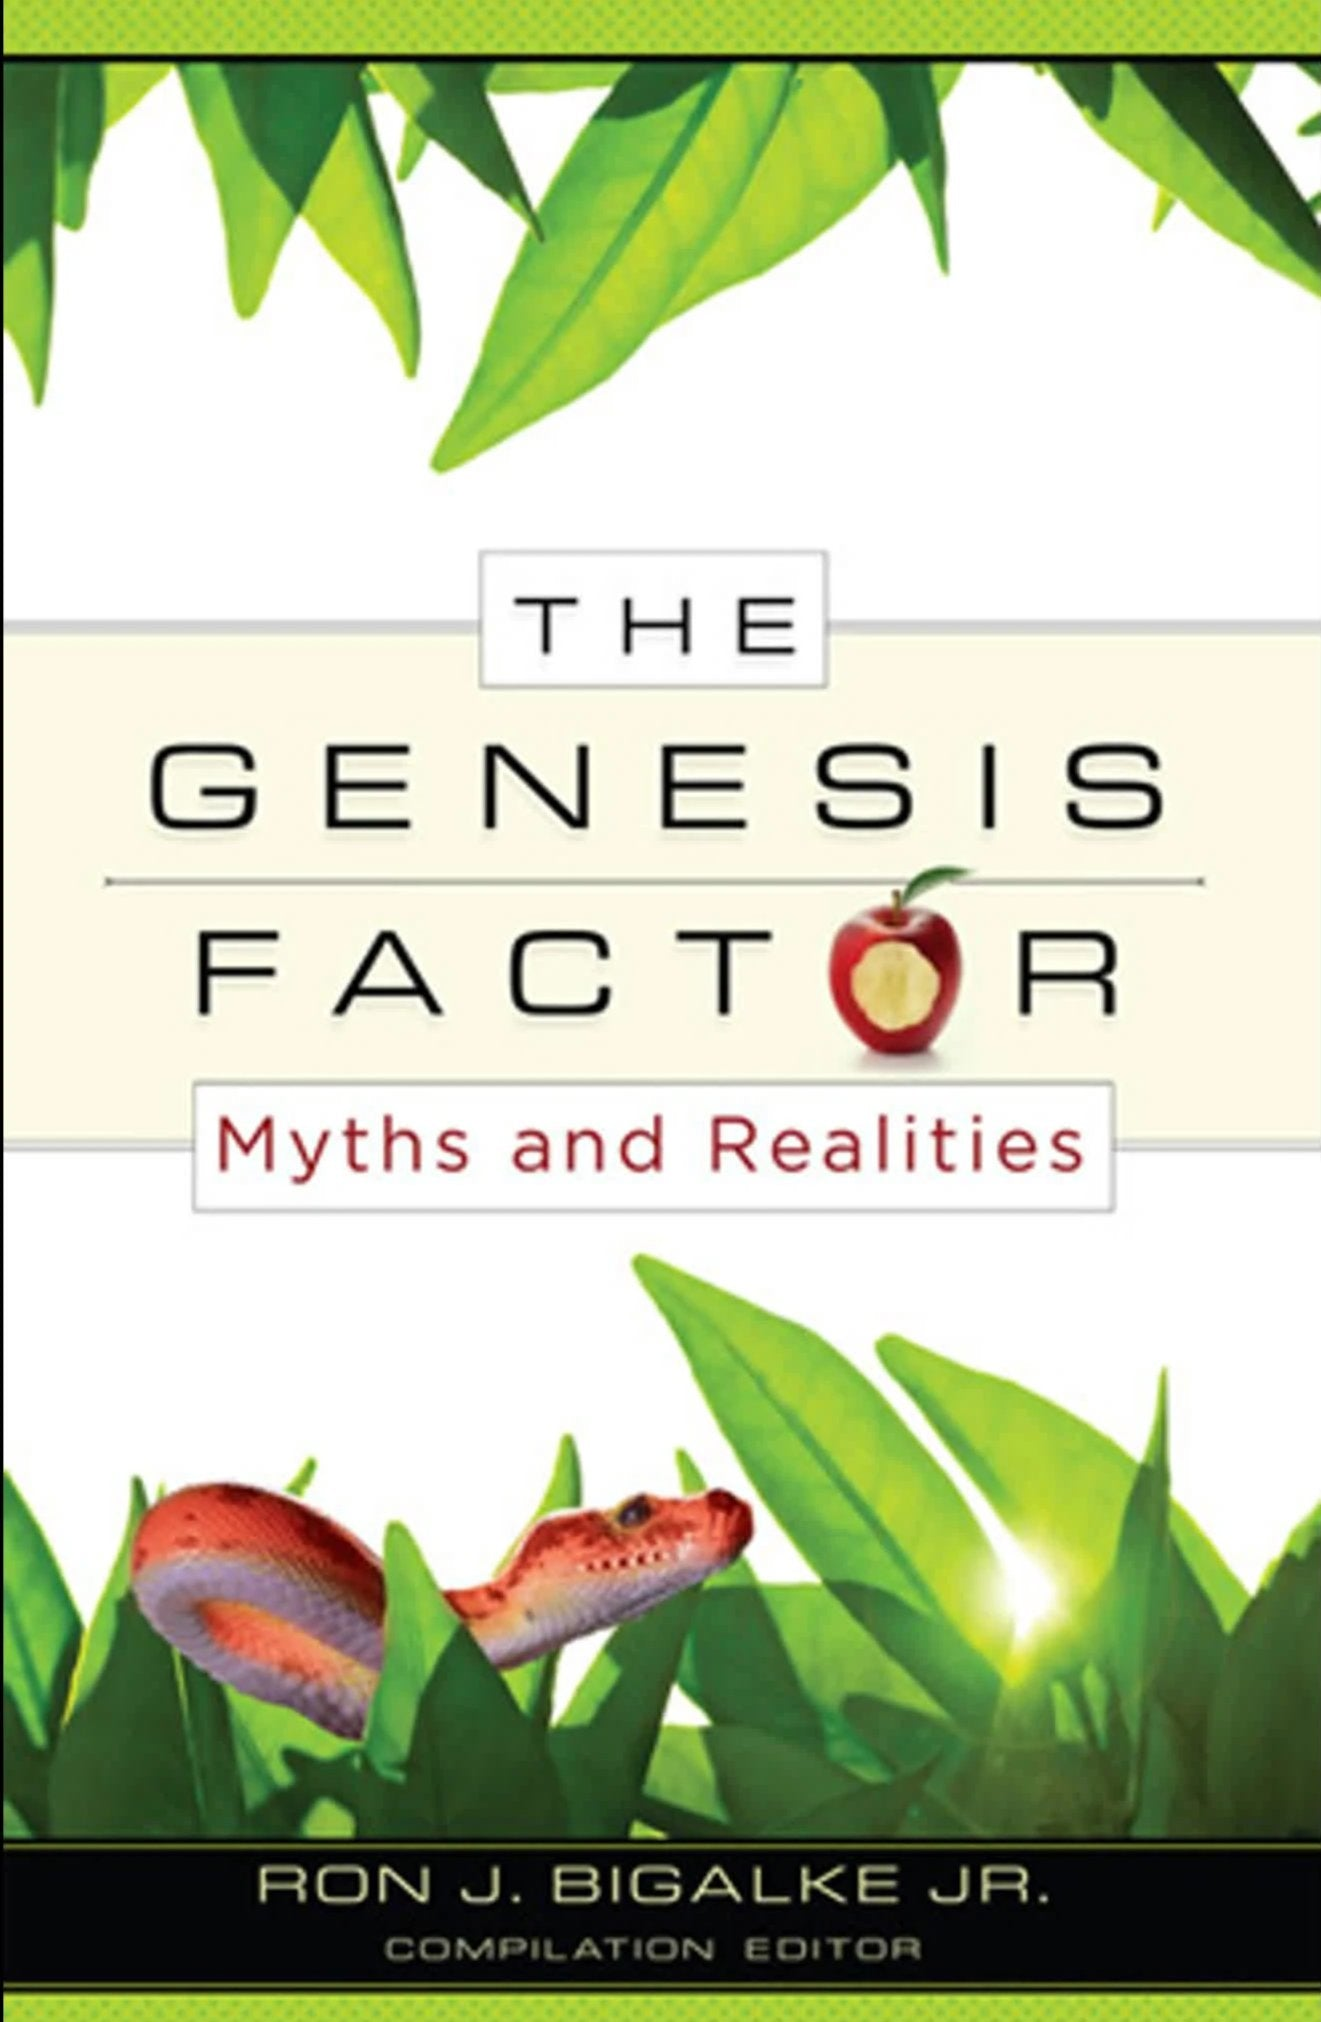 The Genesis Factor: Myths and Realities